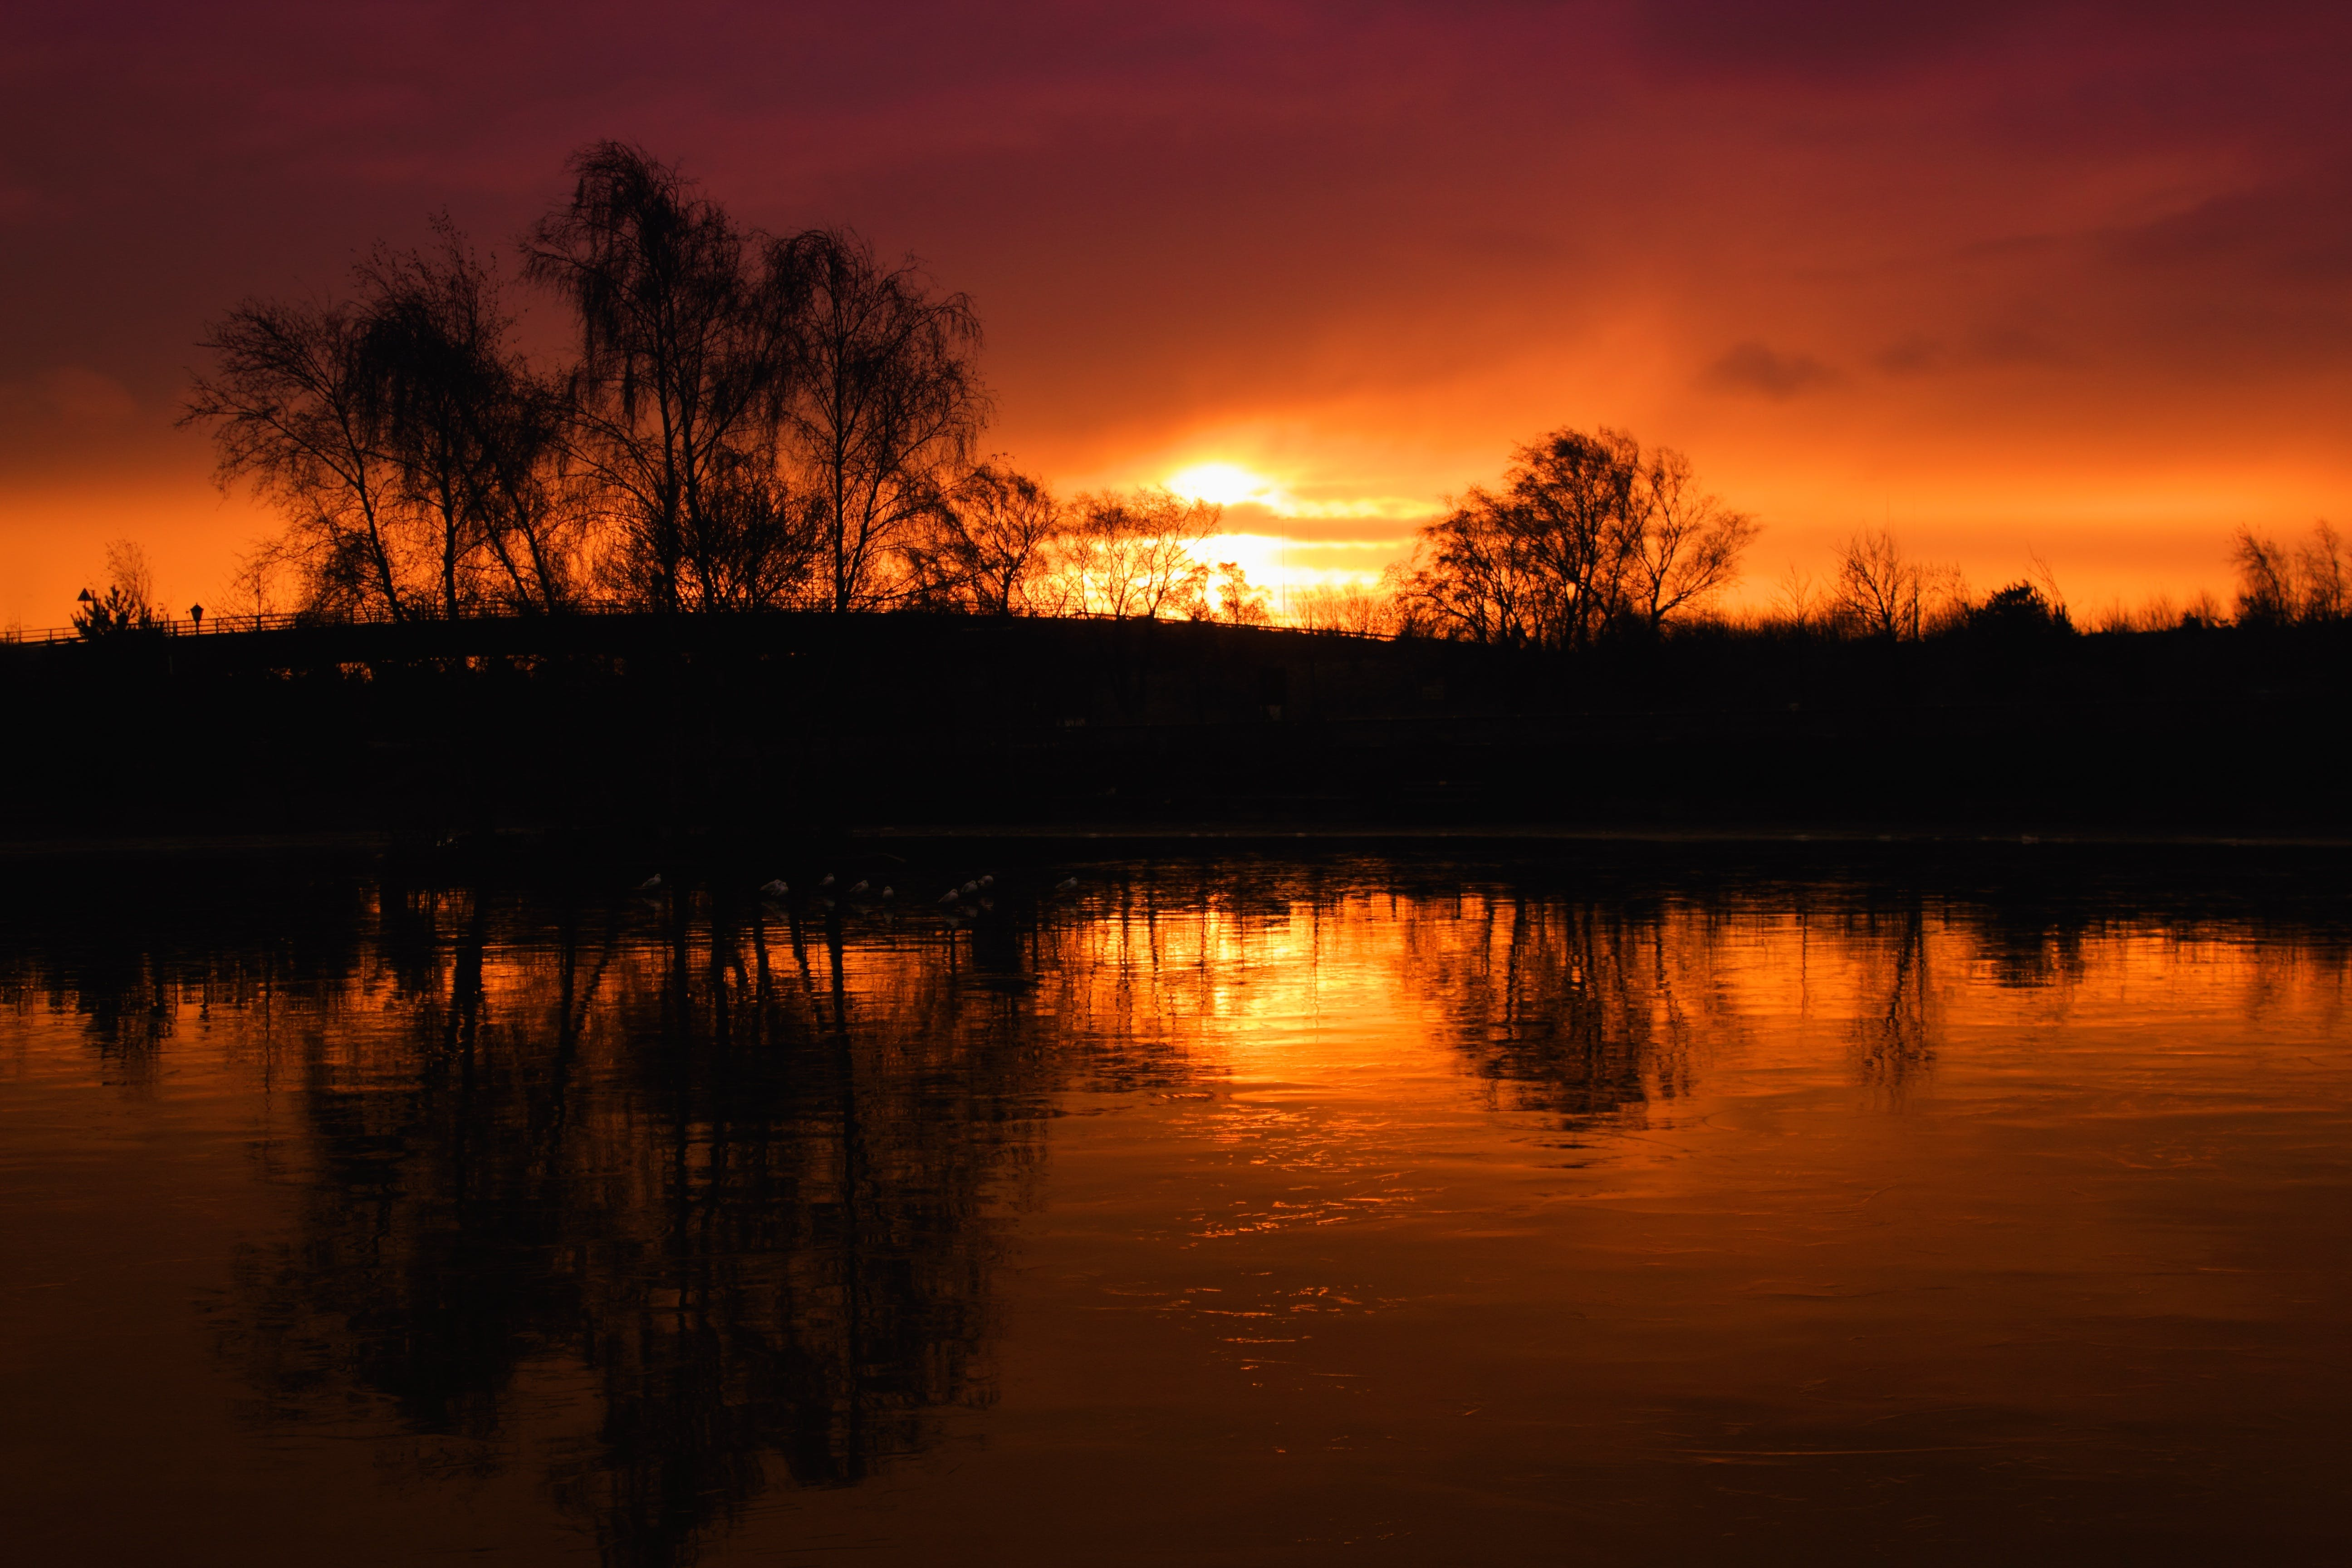 Silhouette of Trees at Sunset Landscape Photography